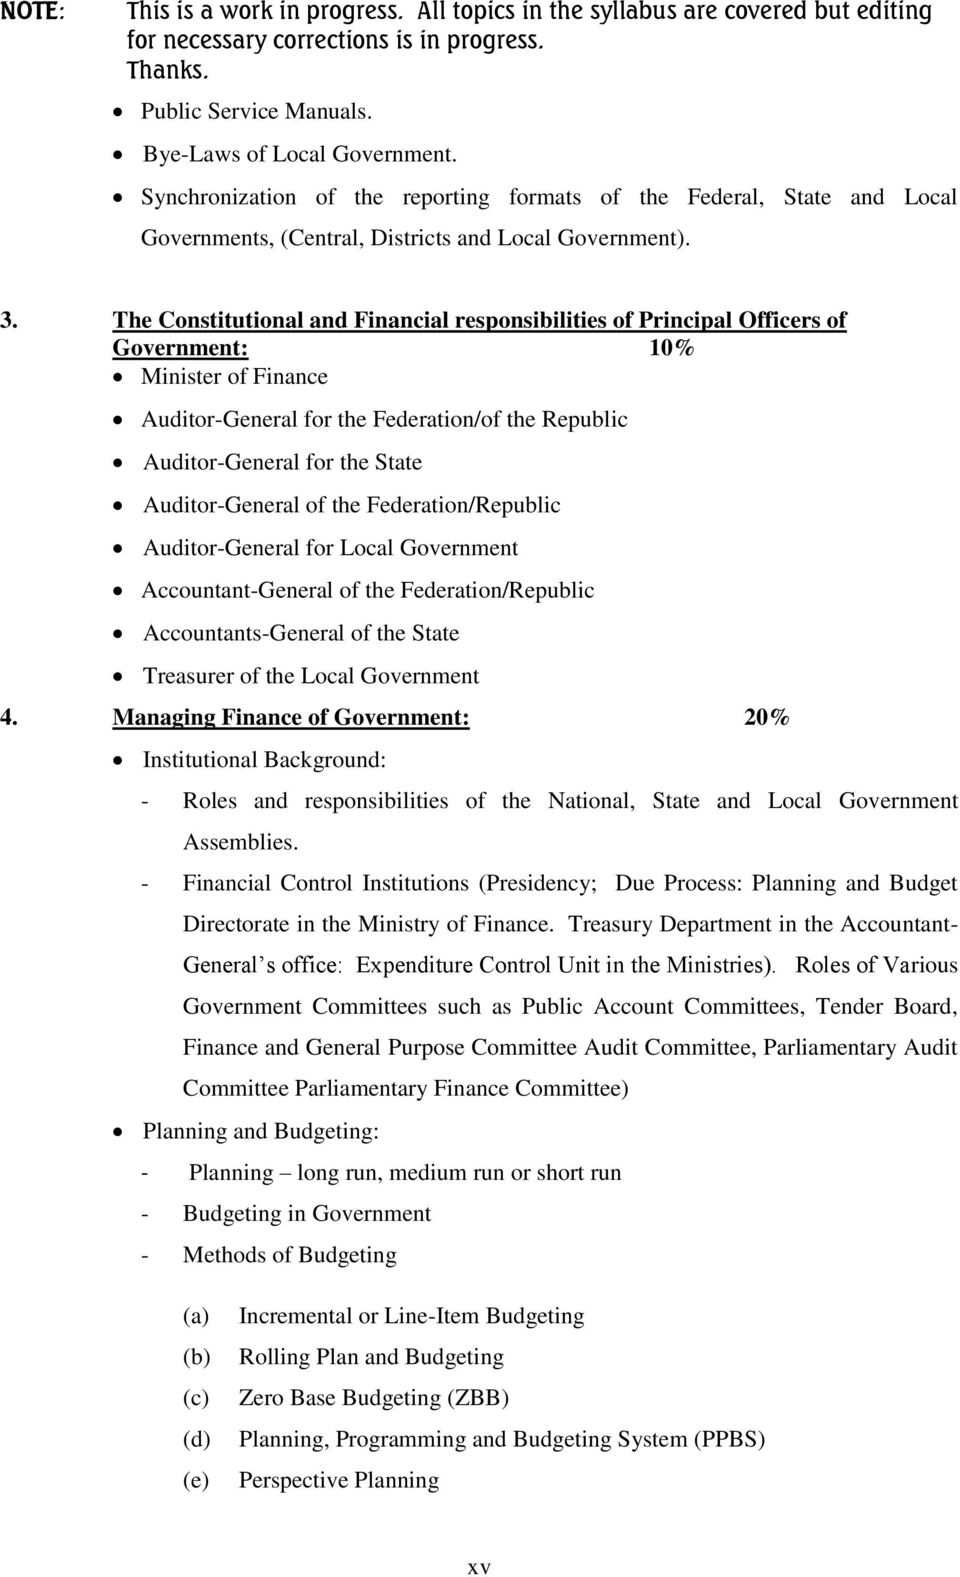 The Constitutional and Financial responsibilities of Principal Officers of Government: 10% Minister of Finance Auditor-General for the Federation/of the Republic Auditor-General for the State